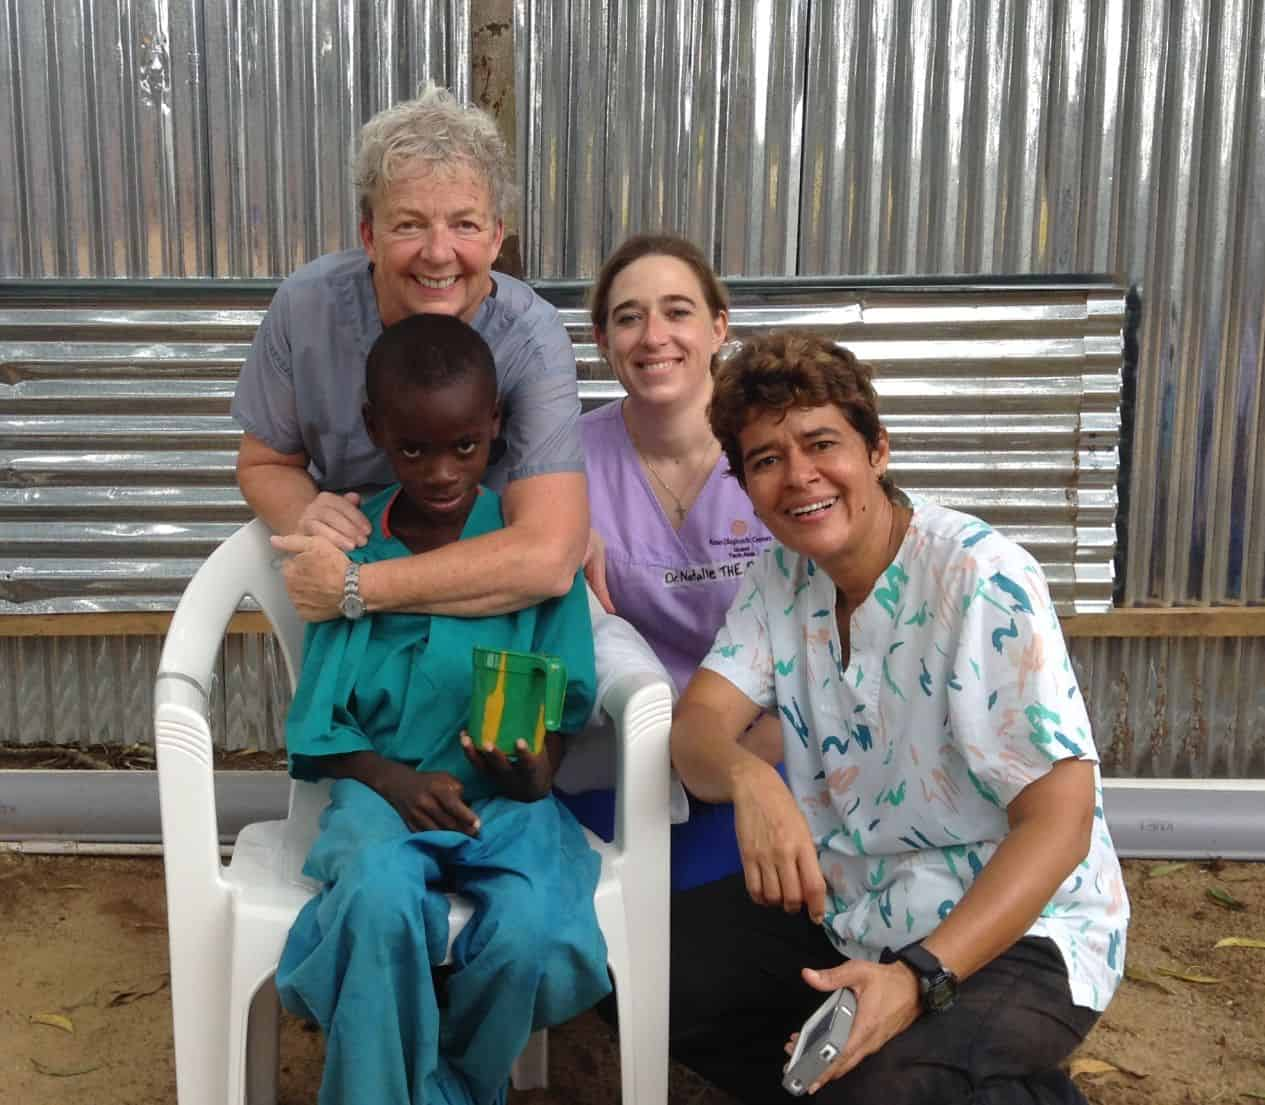 Canadian nurse Dorothy McEachern (back, left) also served with Samaritan's Purse in the Ebola crisis in Liberia in 2014.